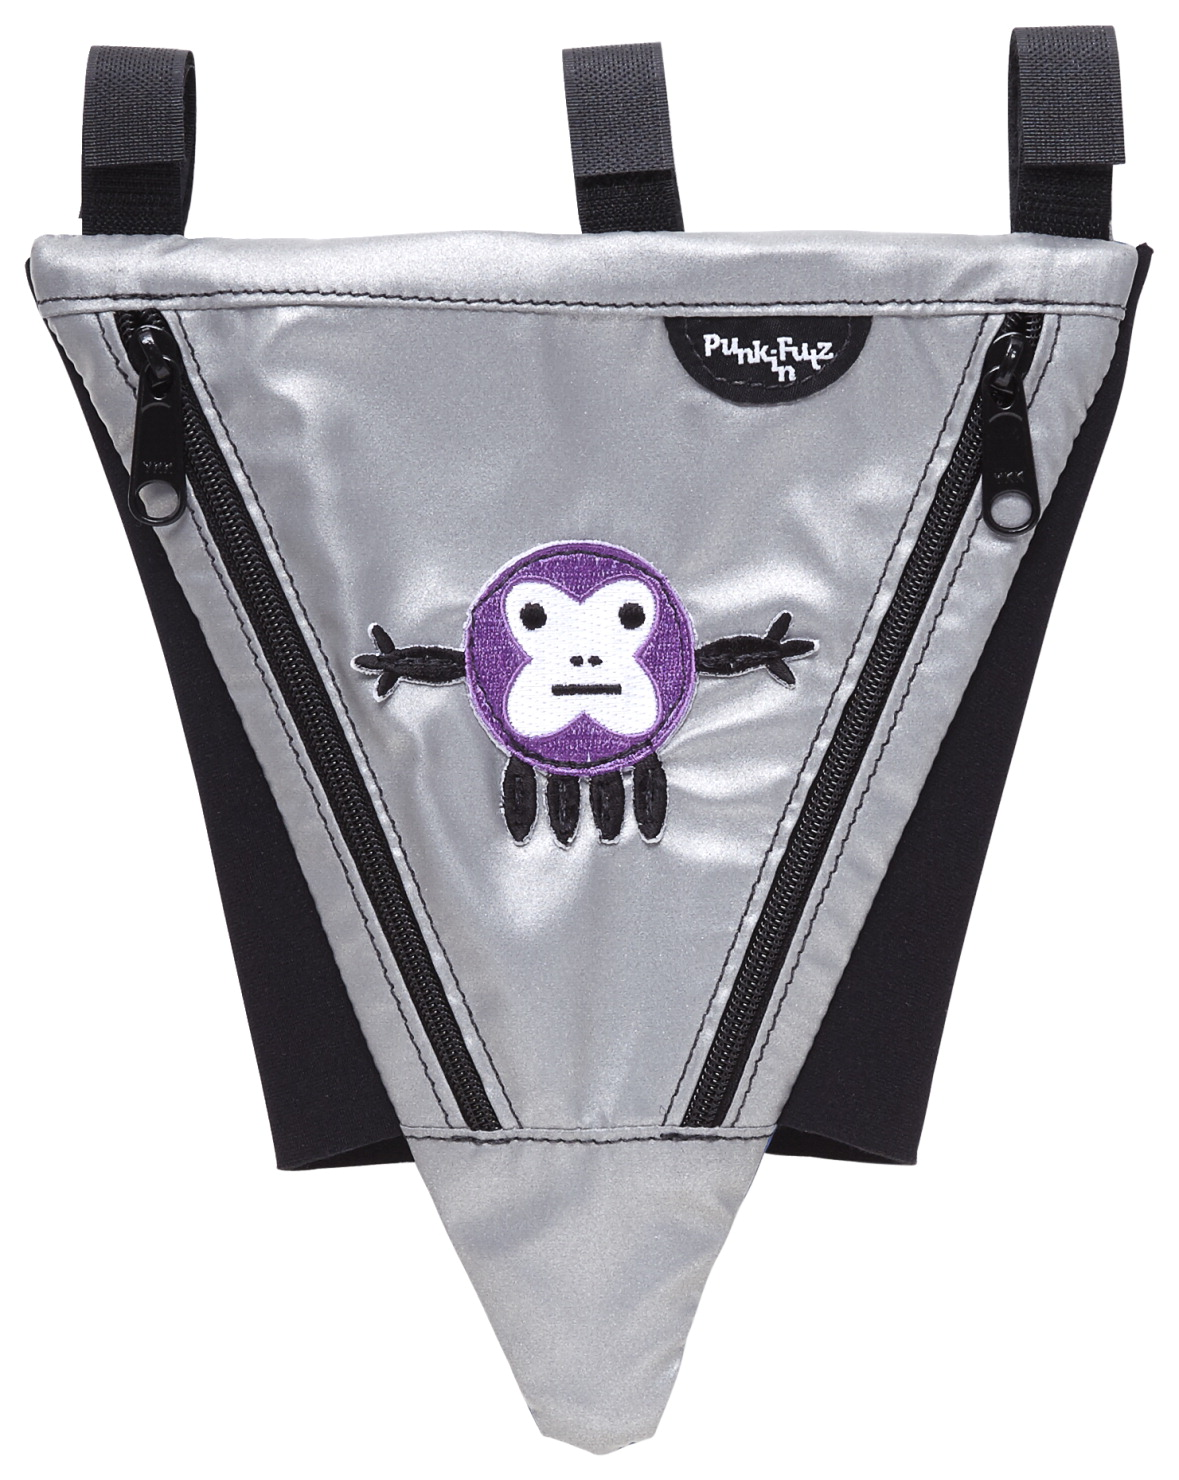 PunkinFutz PunkinPie Accessible Bag, Silver with Monktopus Patch